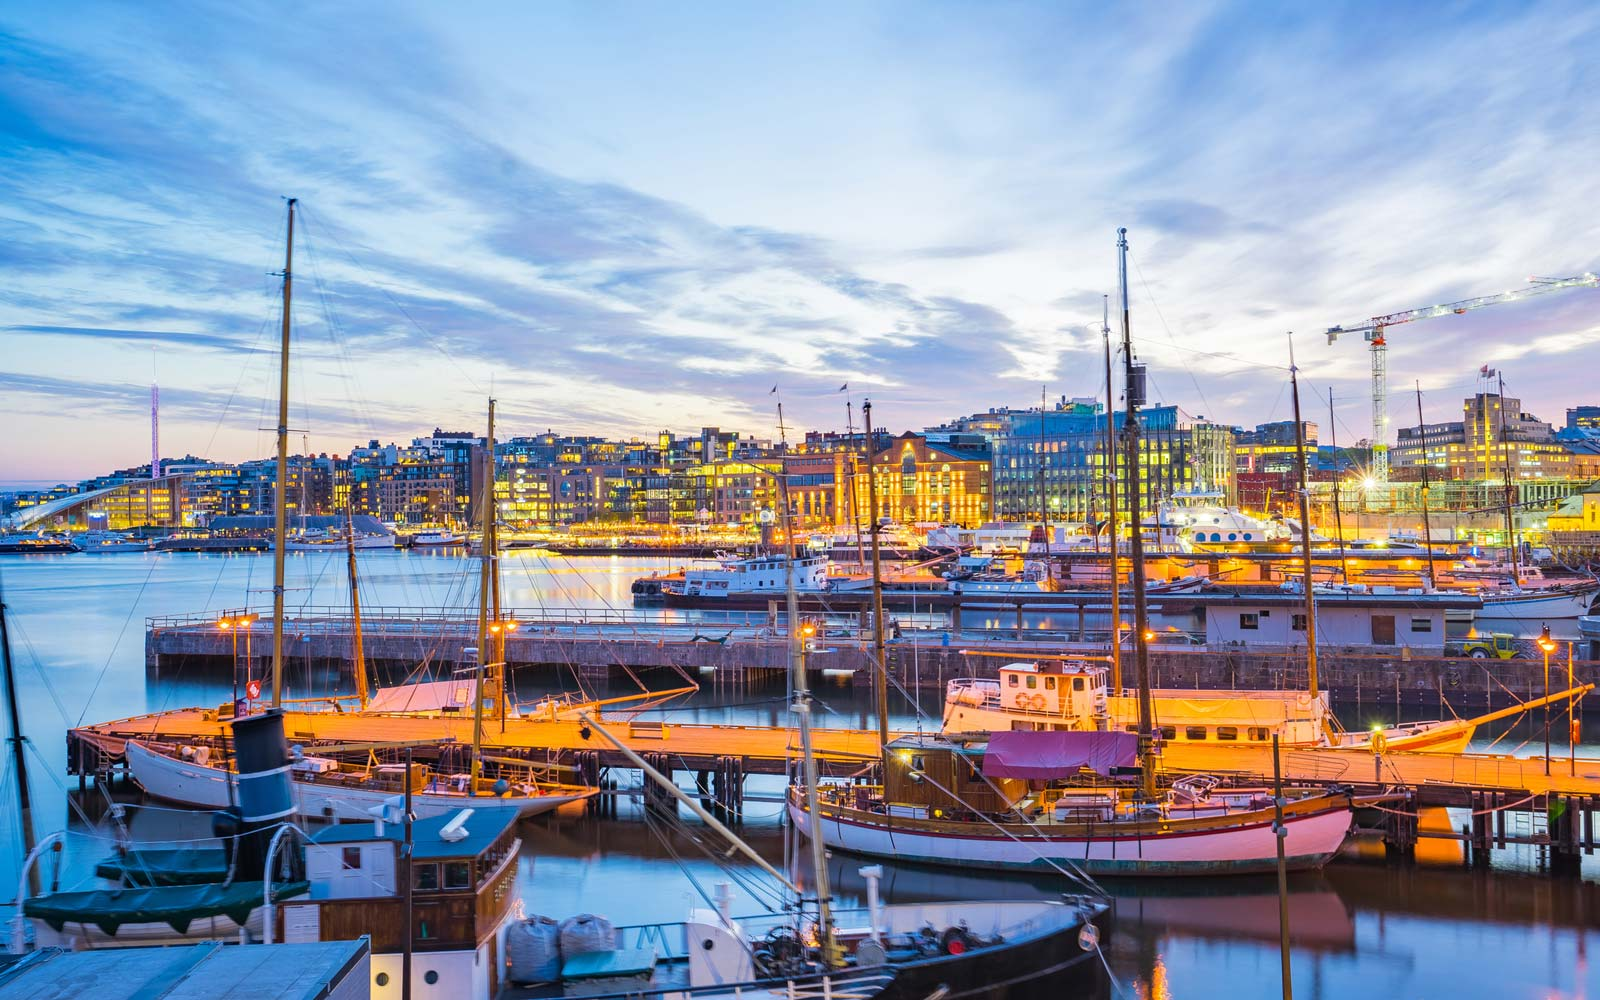 Oslo port with boats and yachts at twilight in Norway